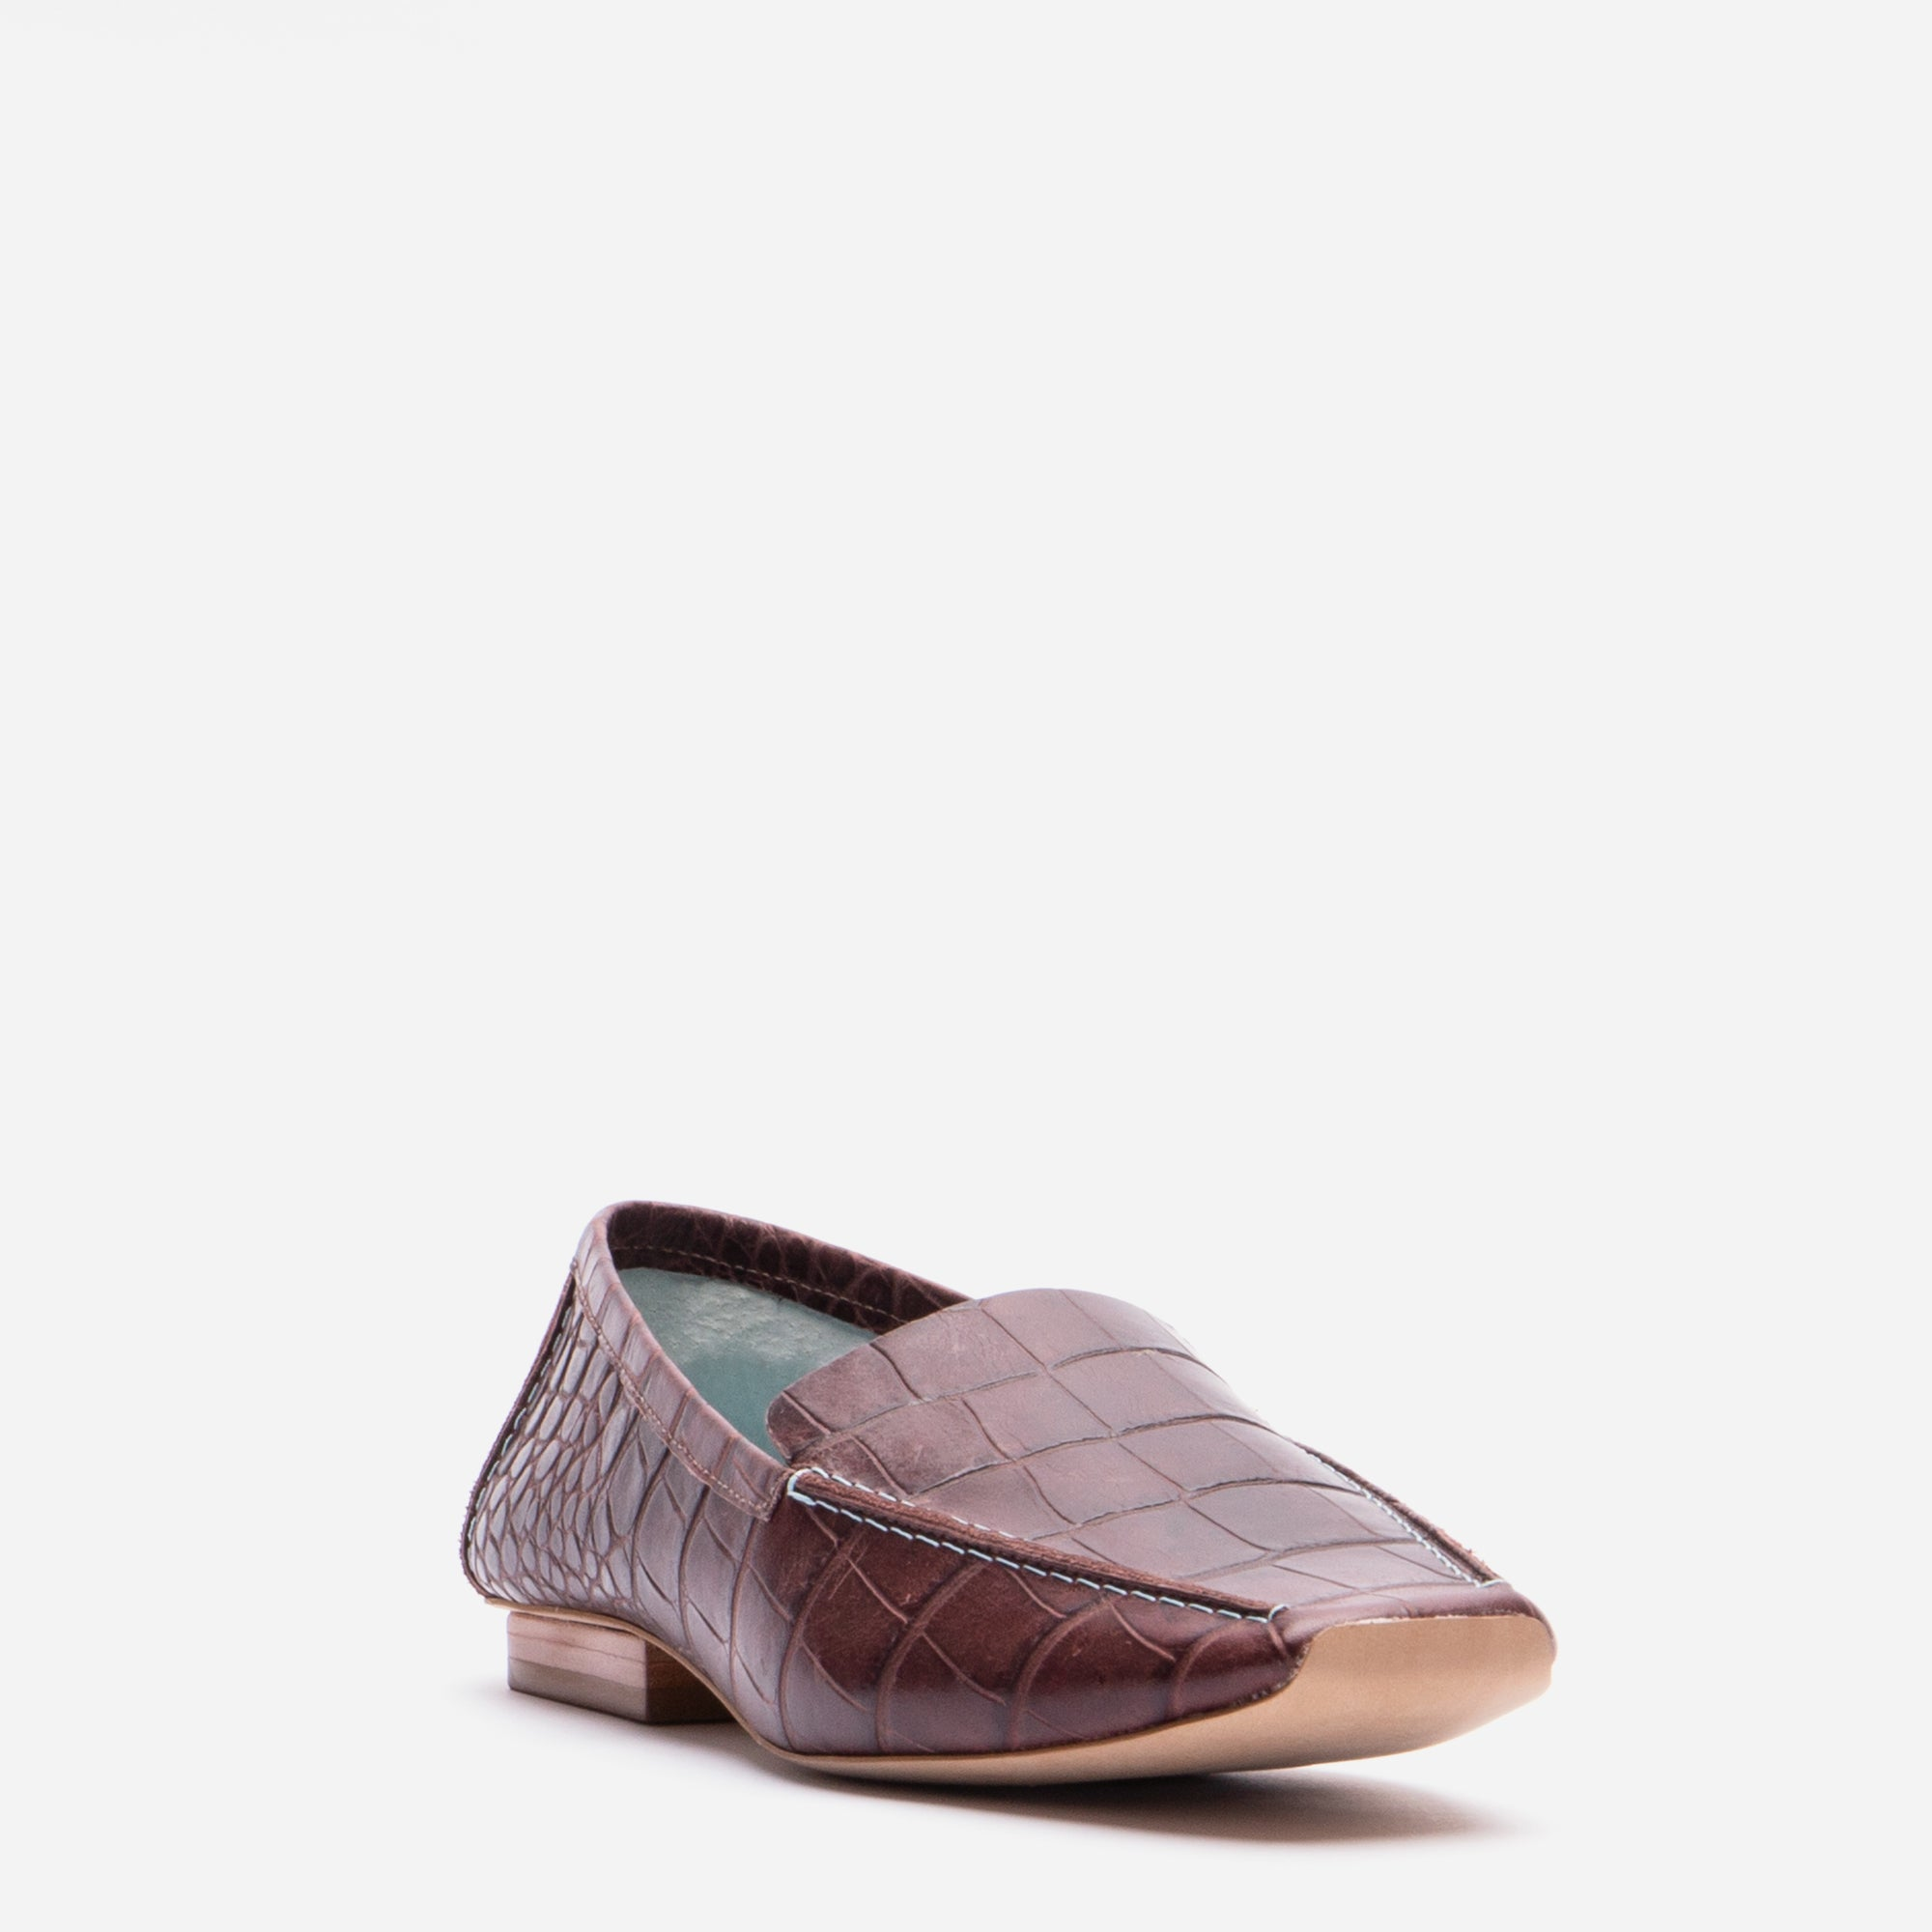 Elyce Loafers Croc Embossed Chocolate